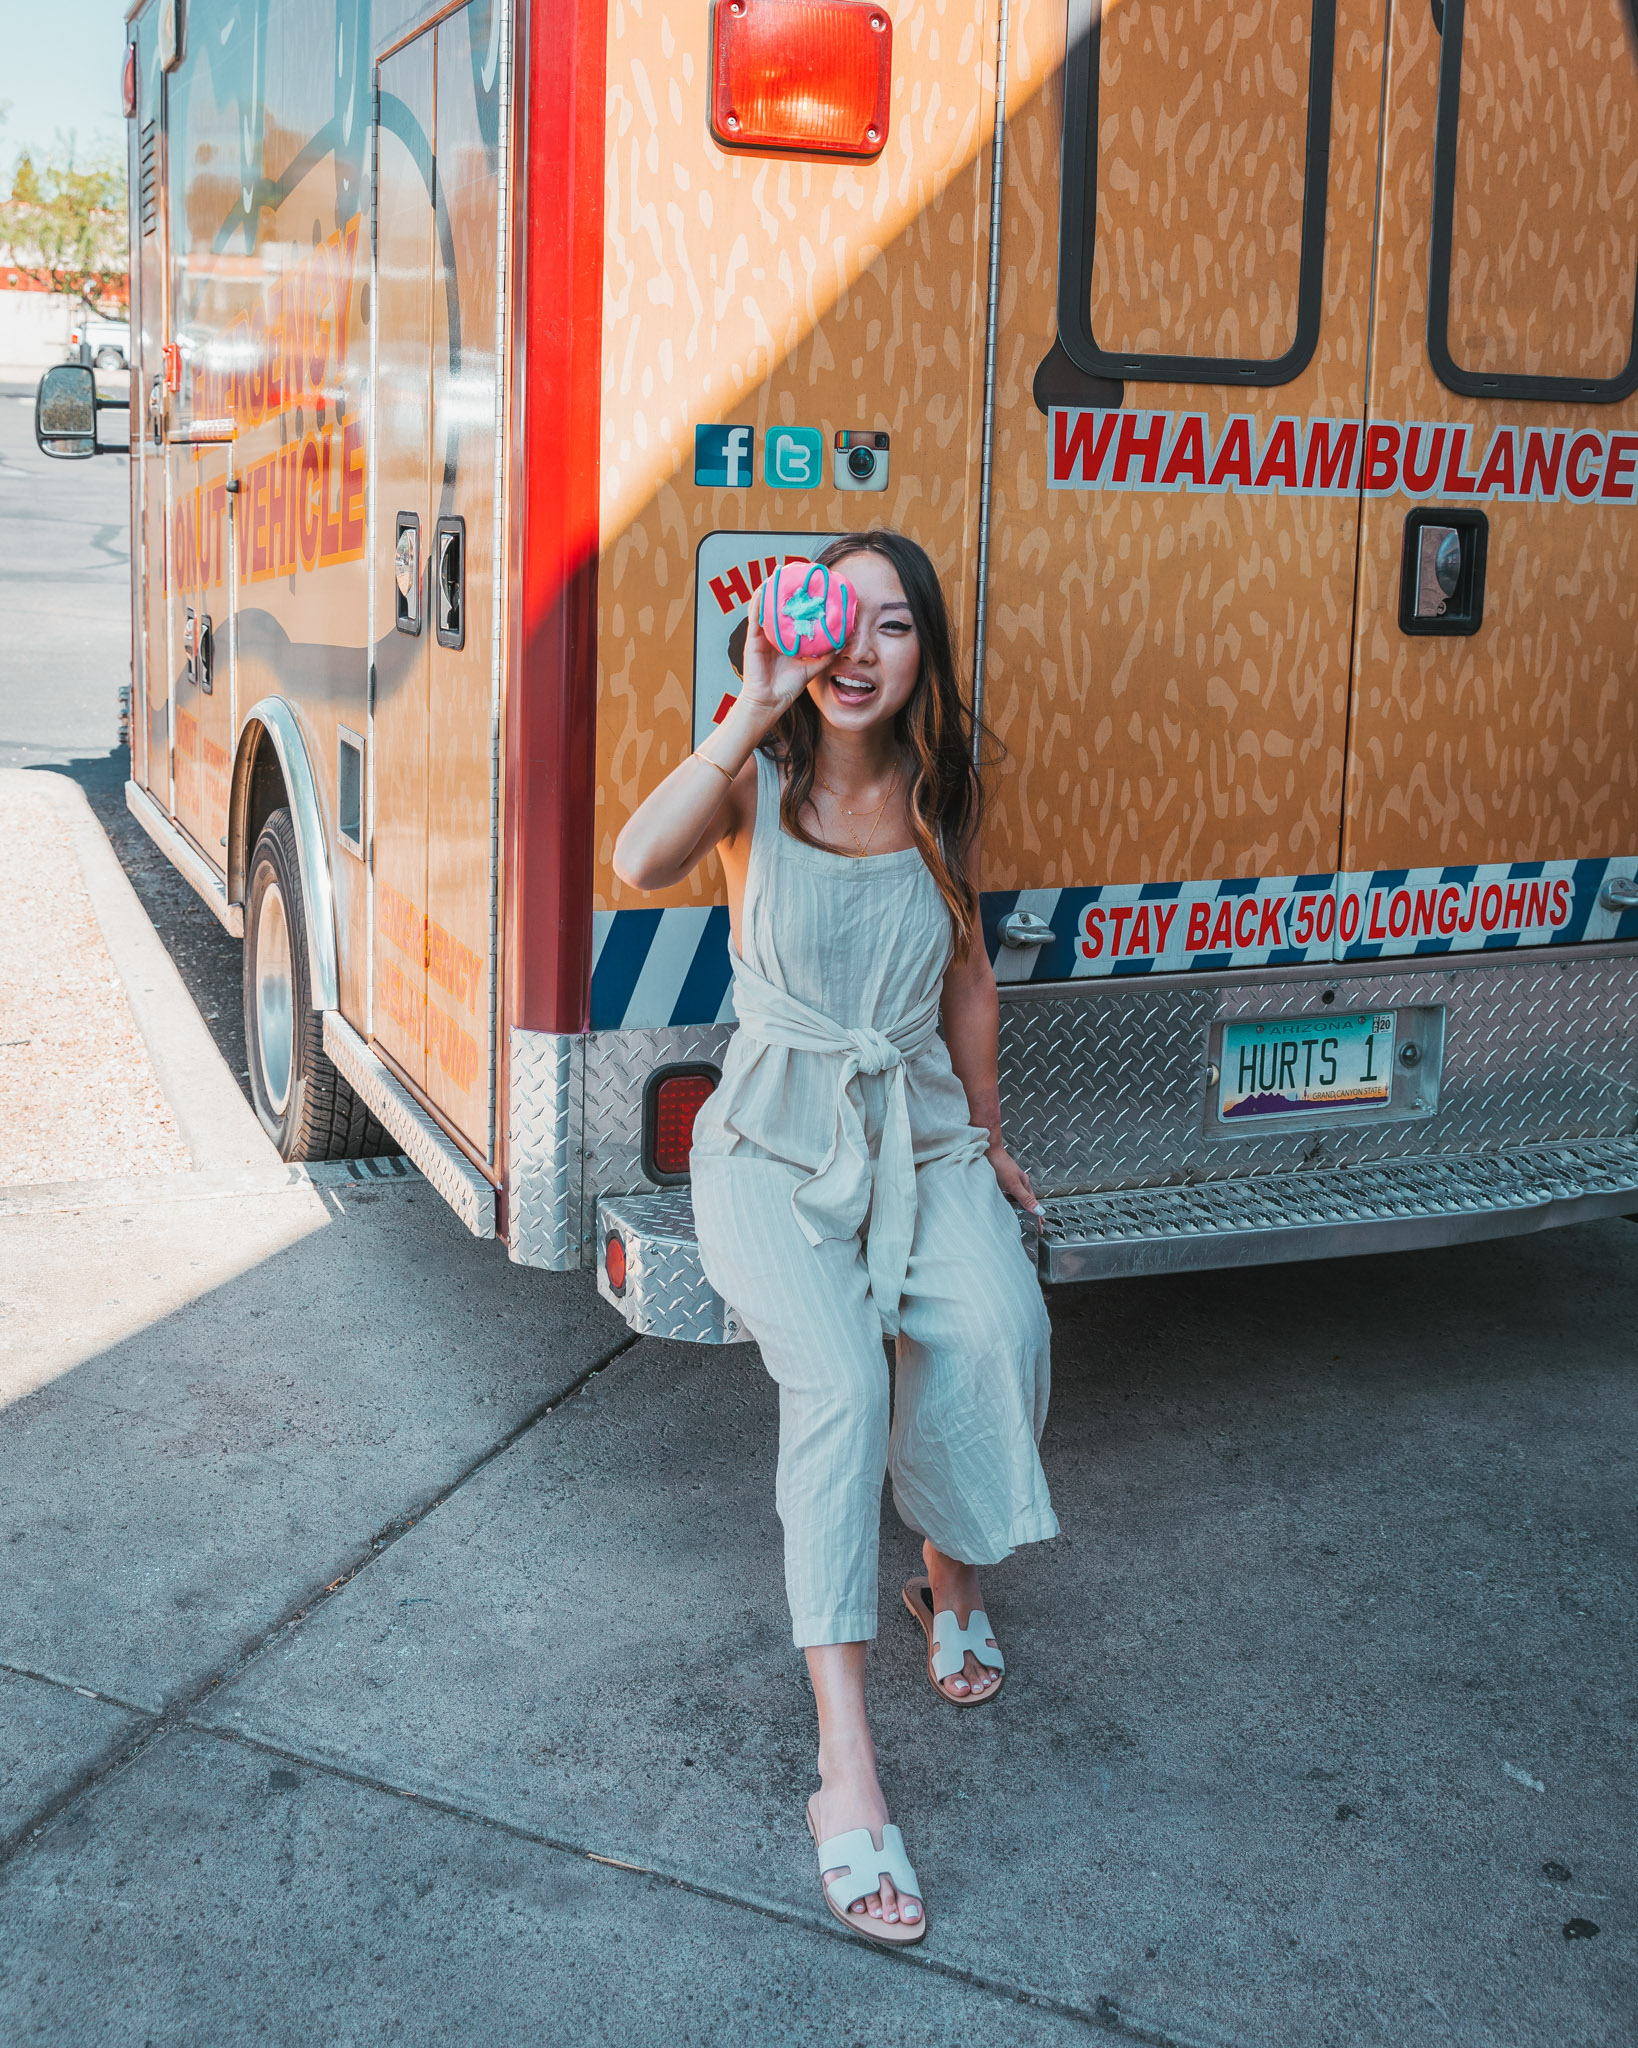 Hurts Donut ambulance delivery truck ~ The Quick Guide to Tempe, Arizona